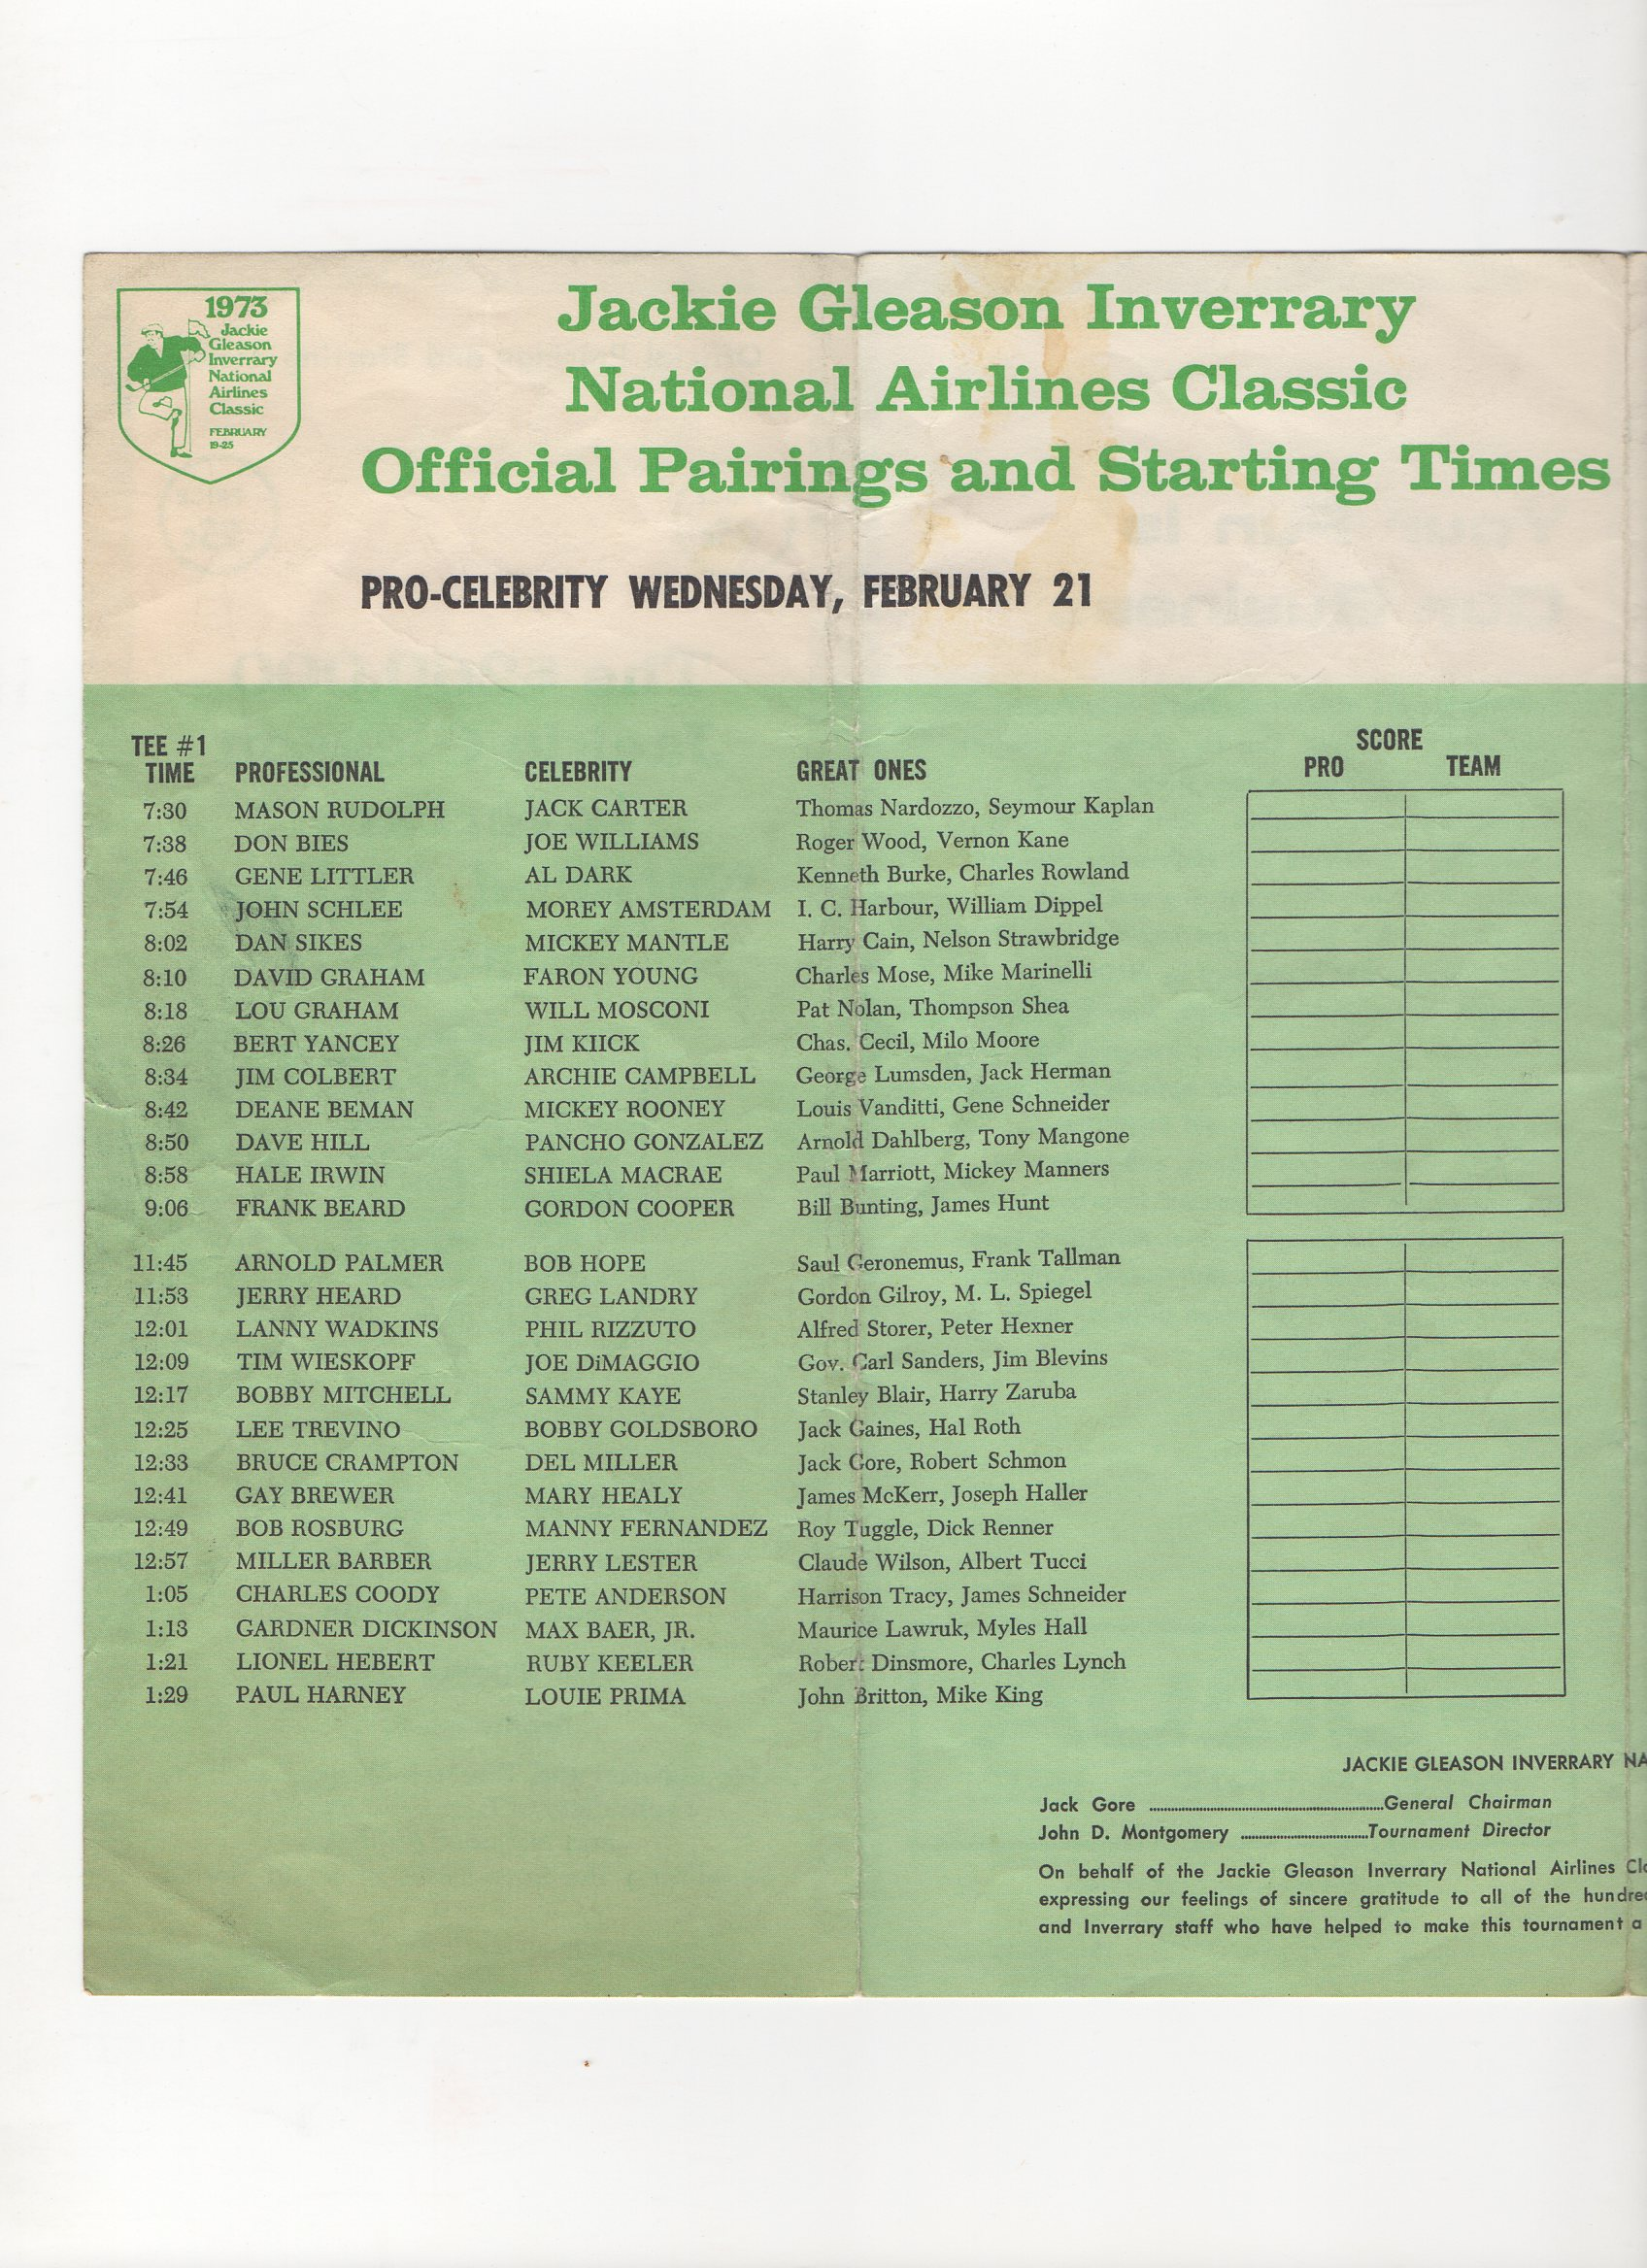 1972 jackie gleason inverrary national airlines classic